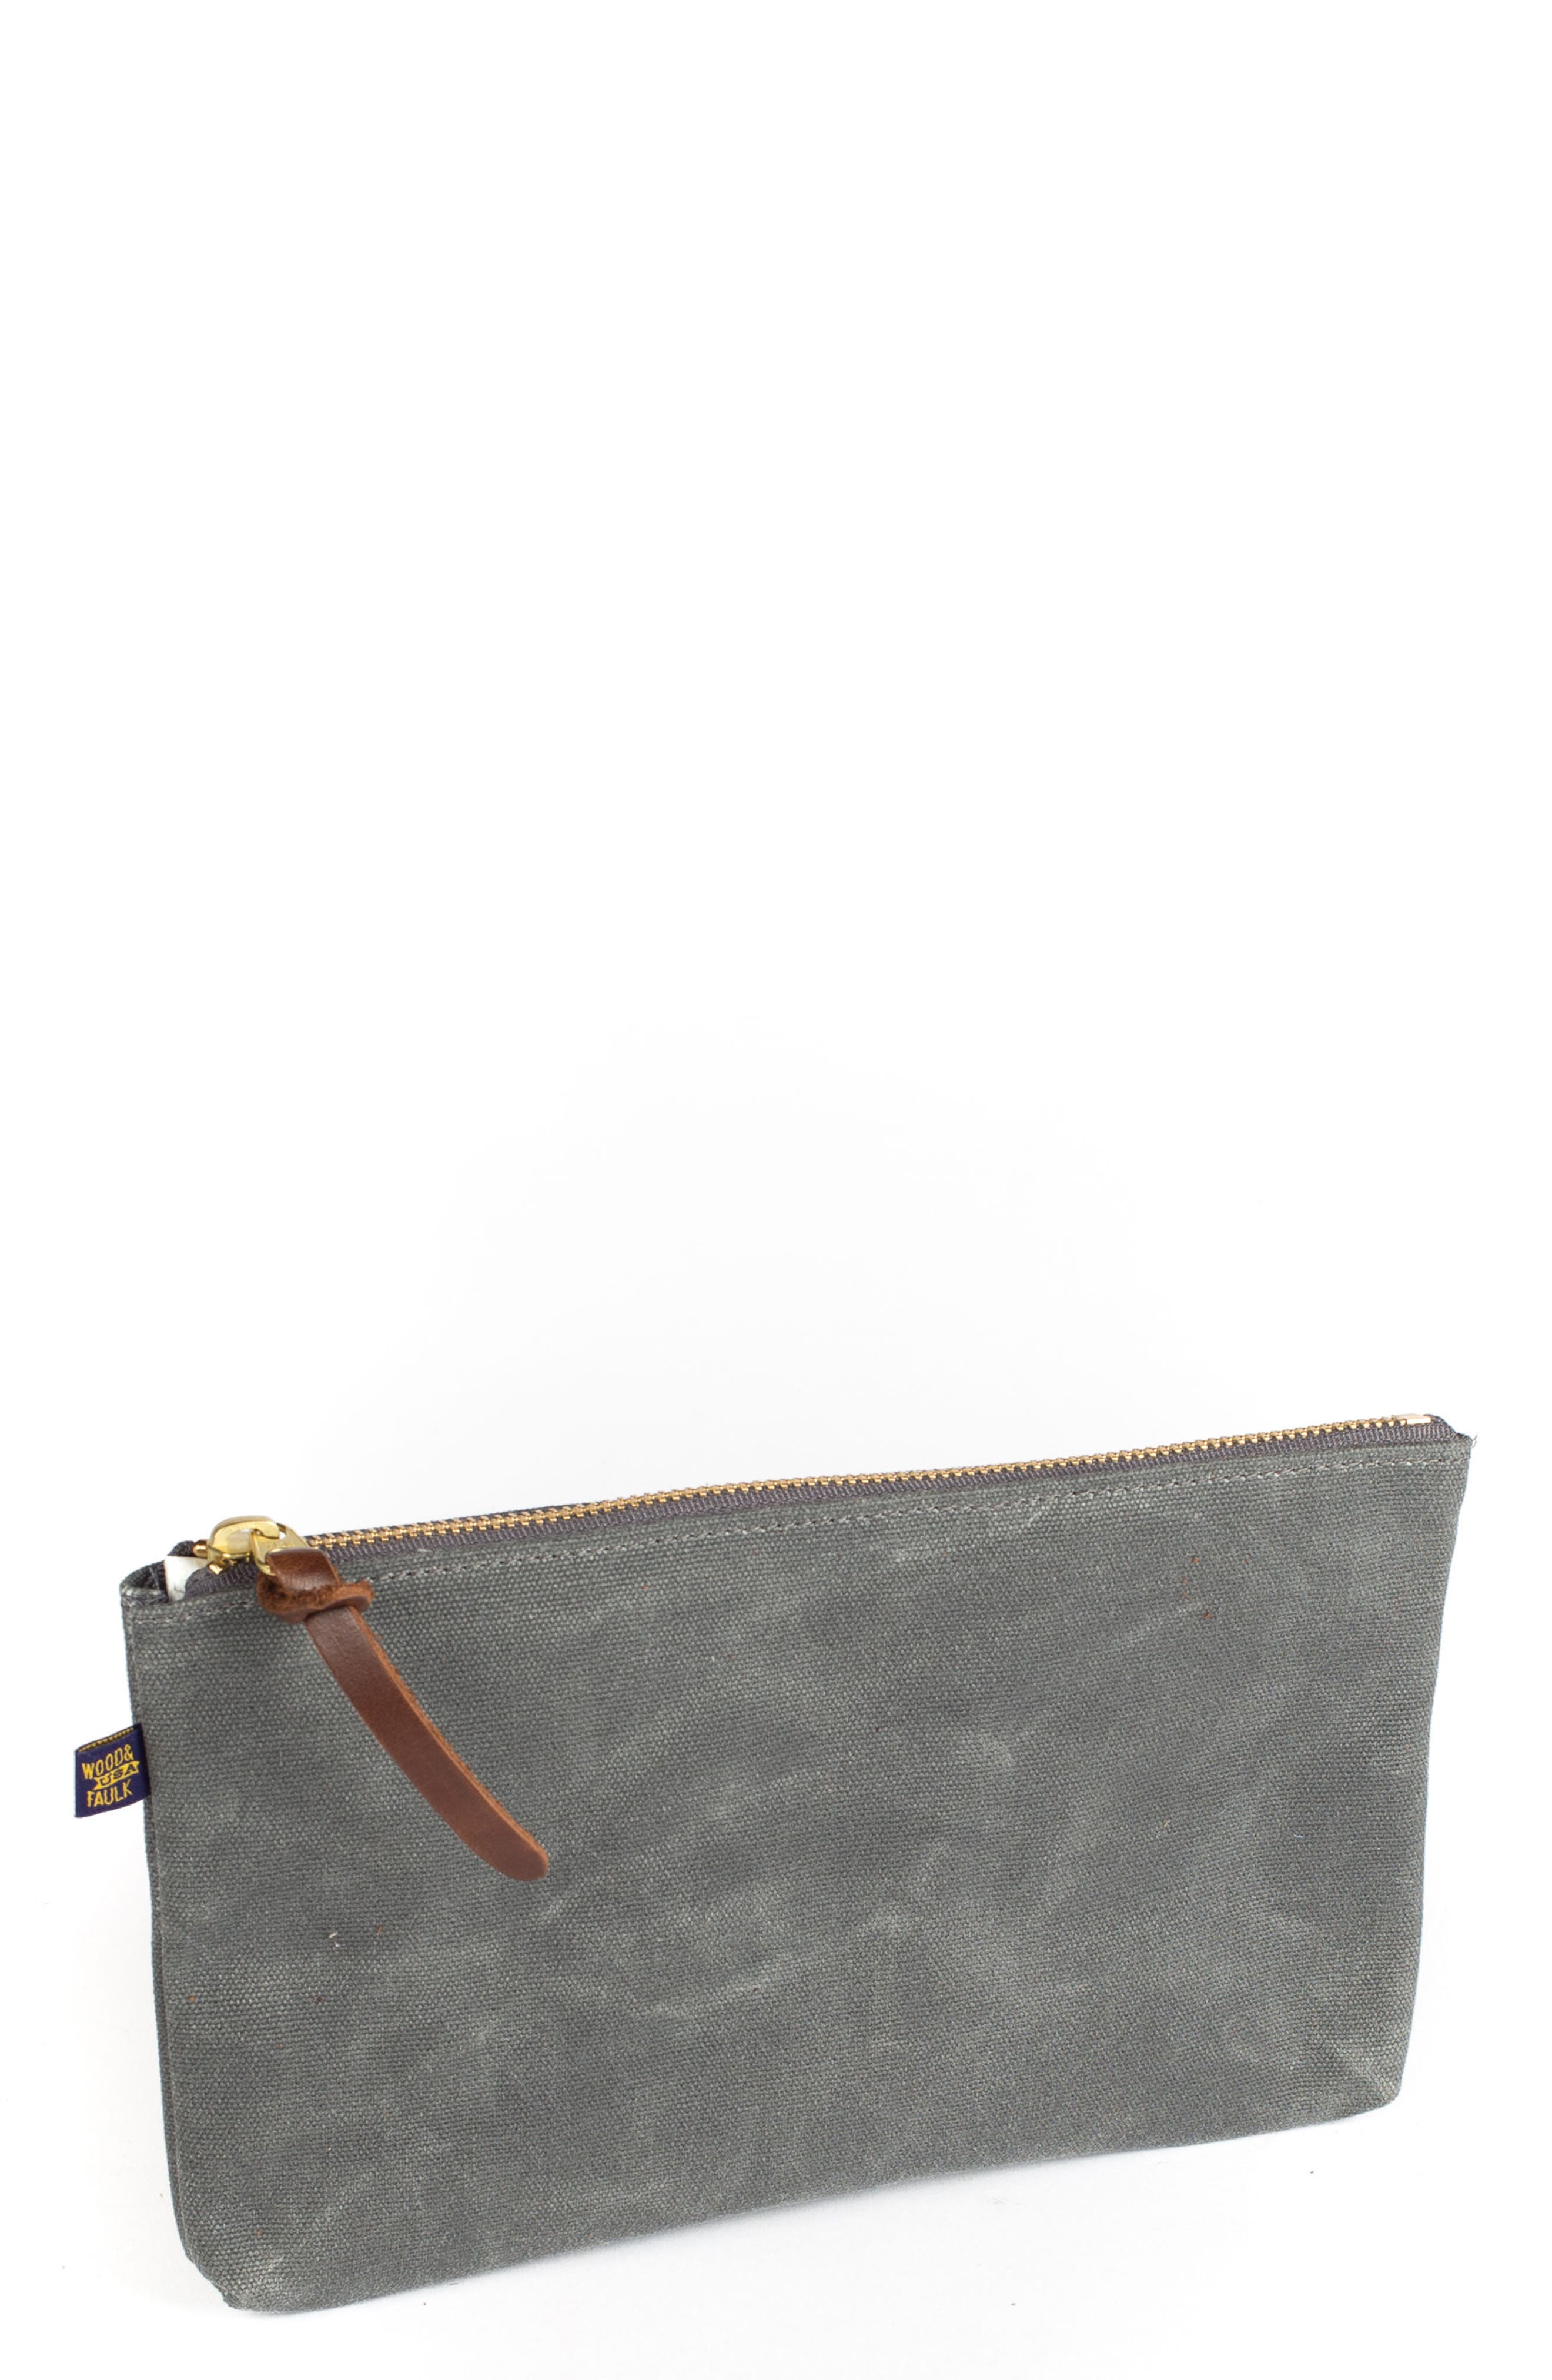 Waxed Canvas Zip Pouch,                             Main thumbnail 1, color,                             022